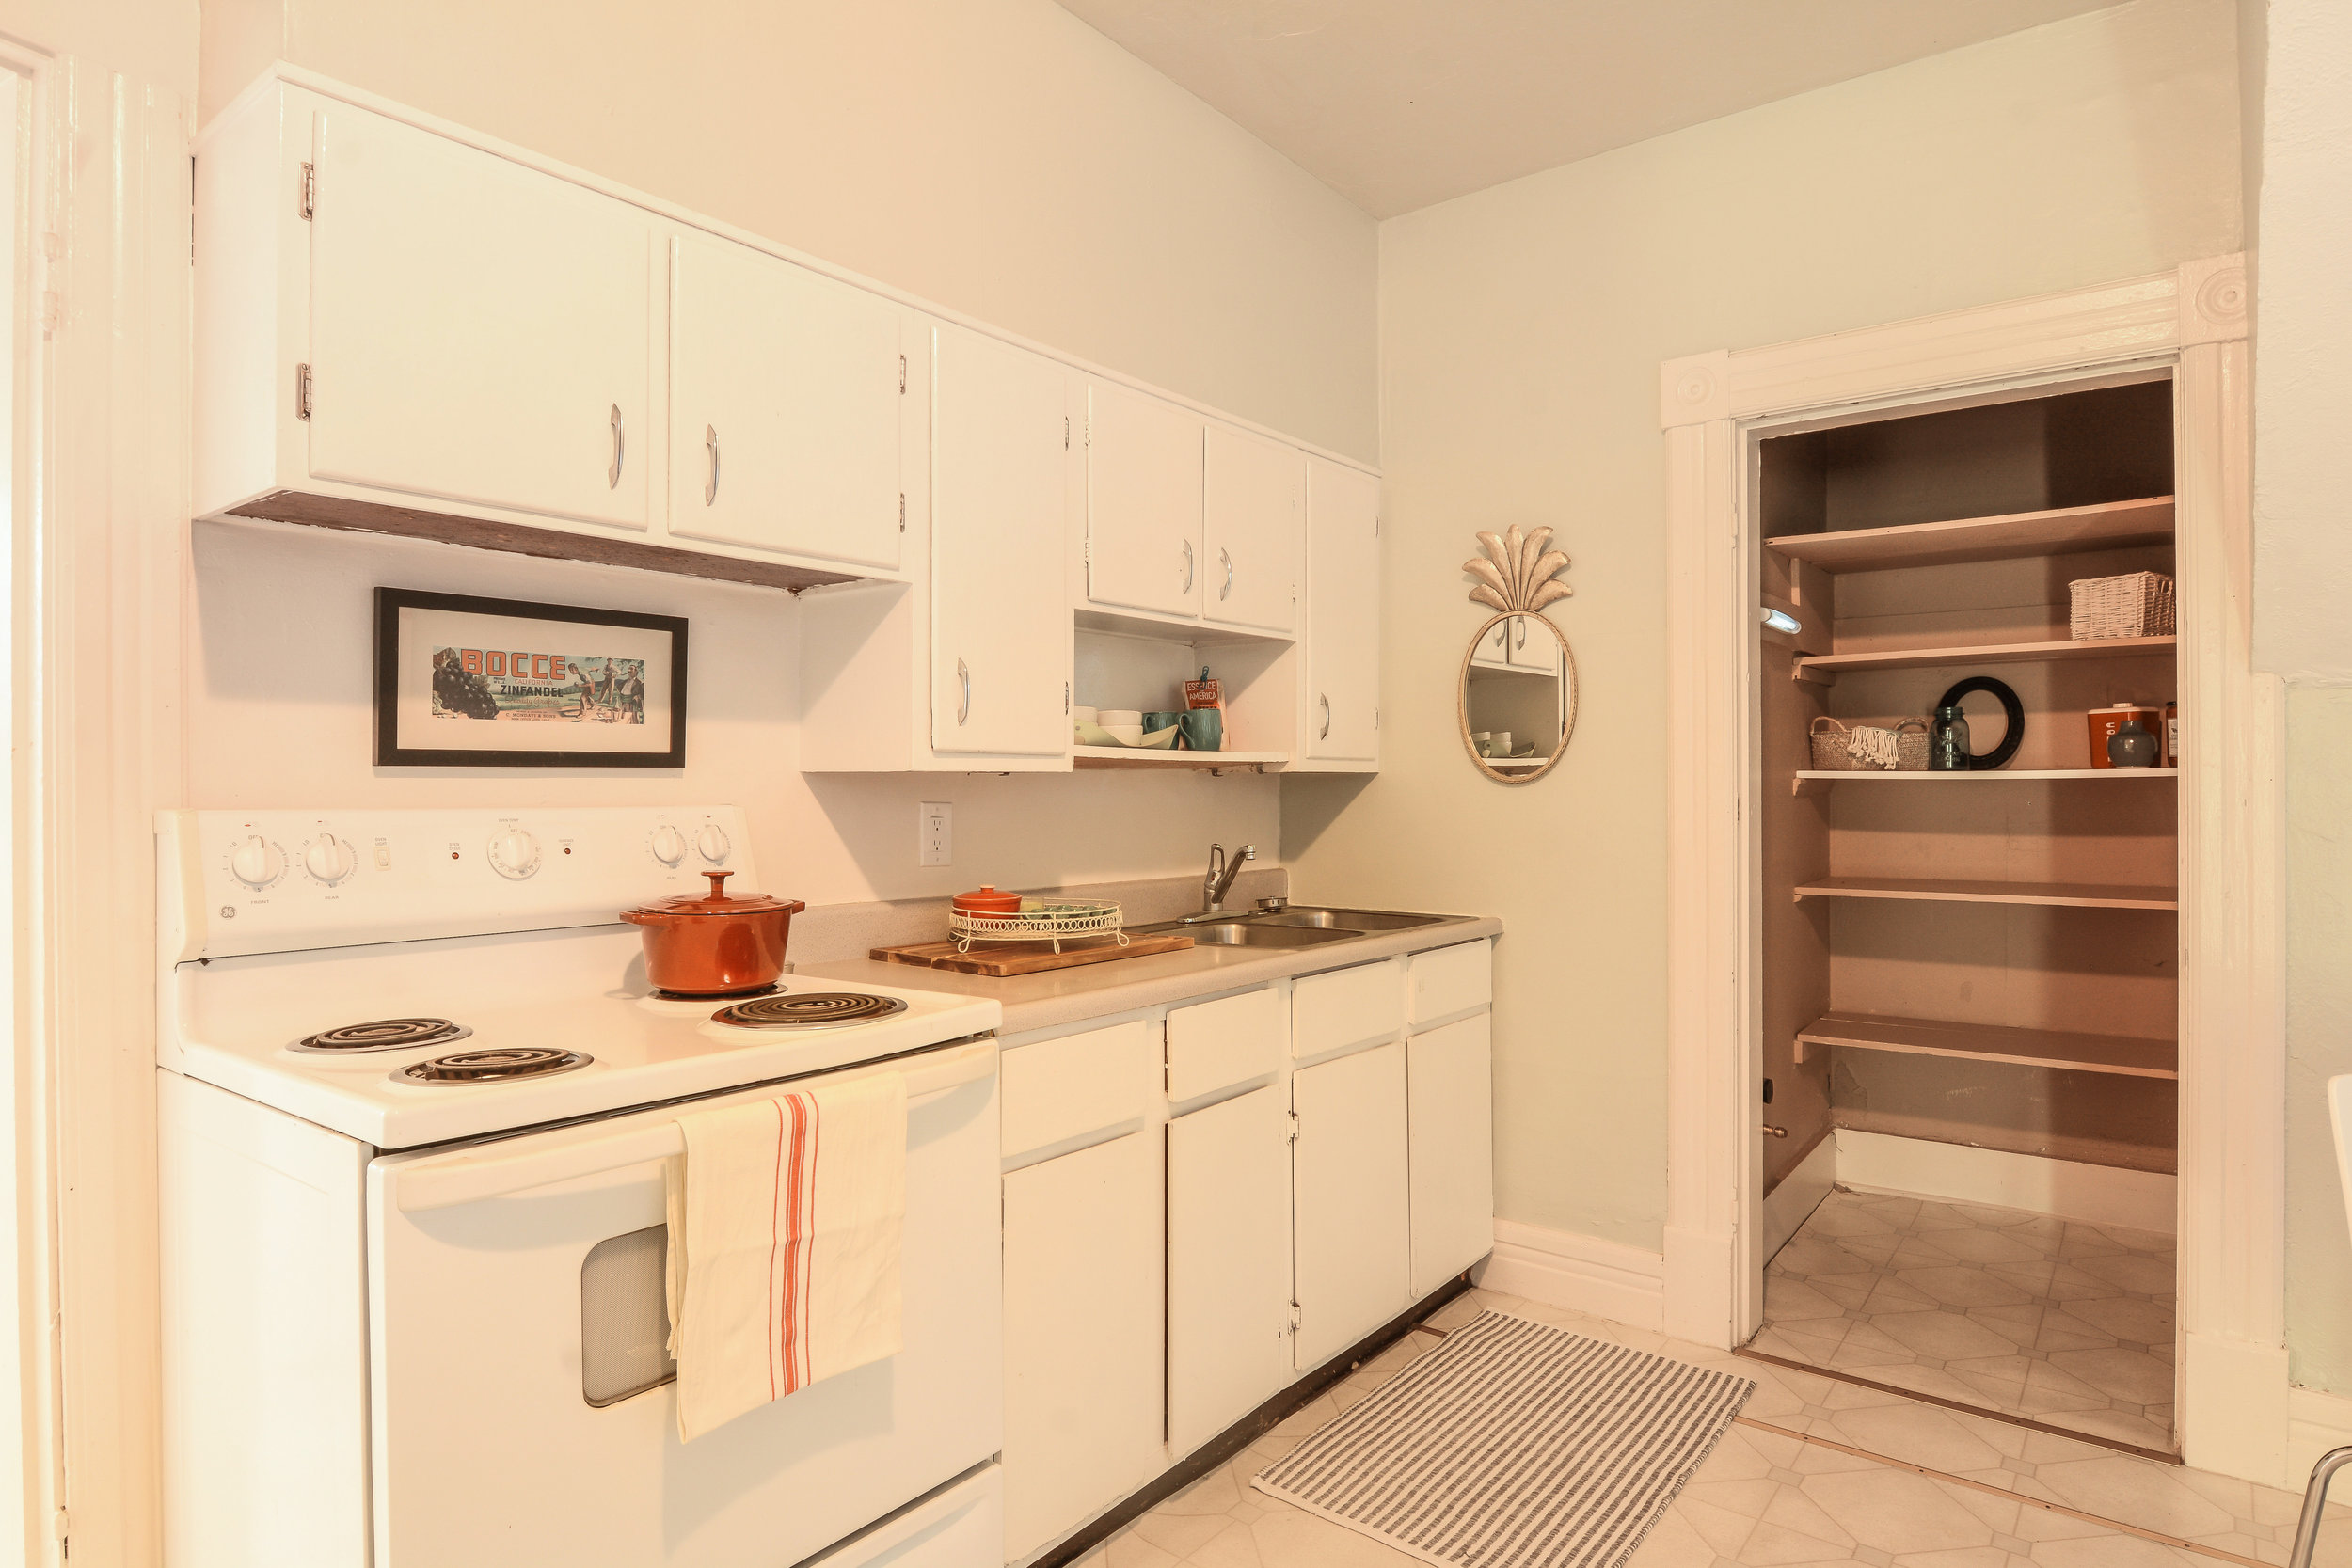 Having a pantry frees up more space in the cabinets for dishes and kitchen tools.